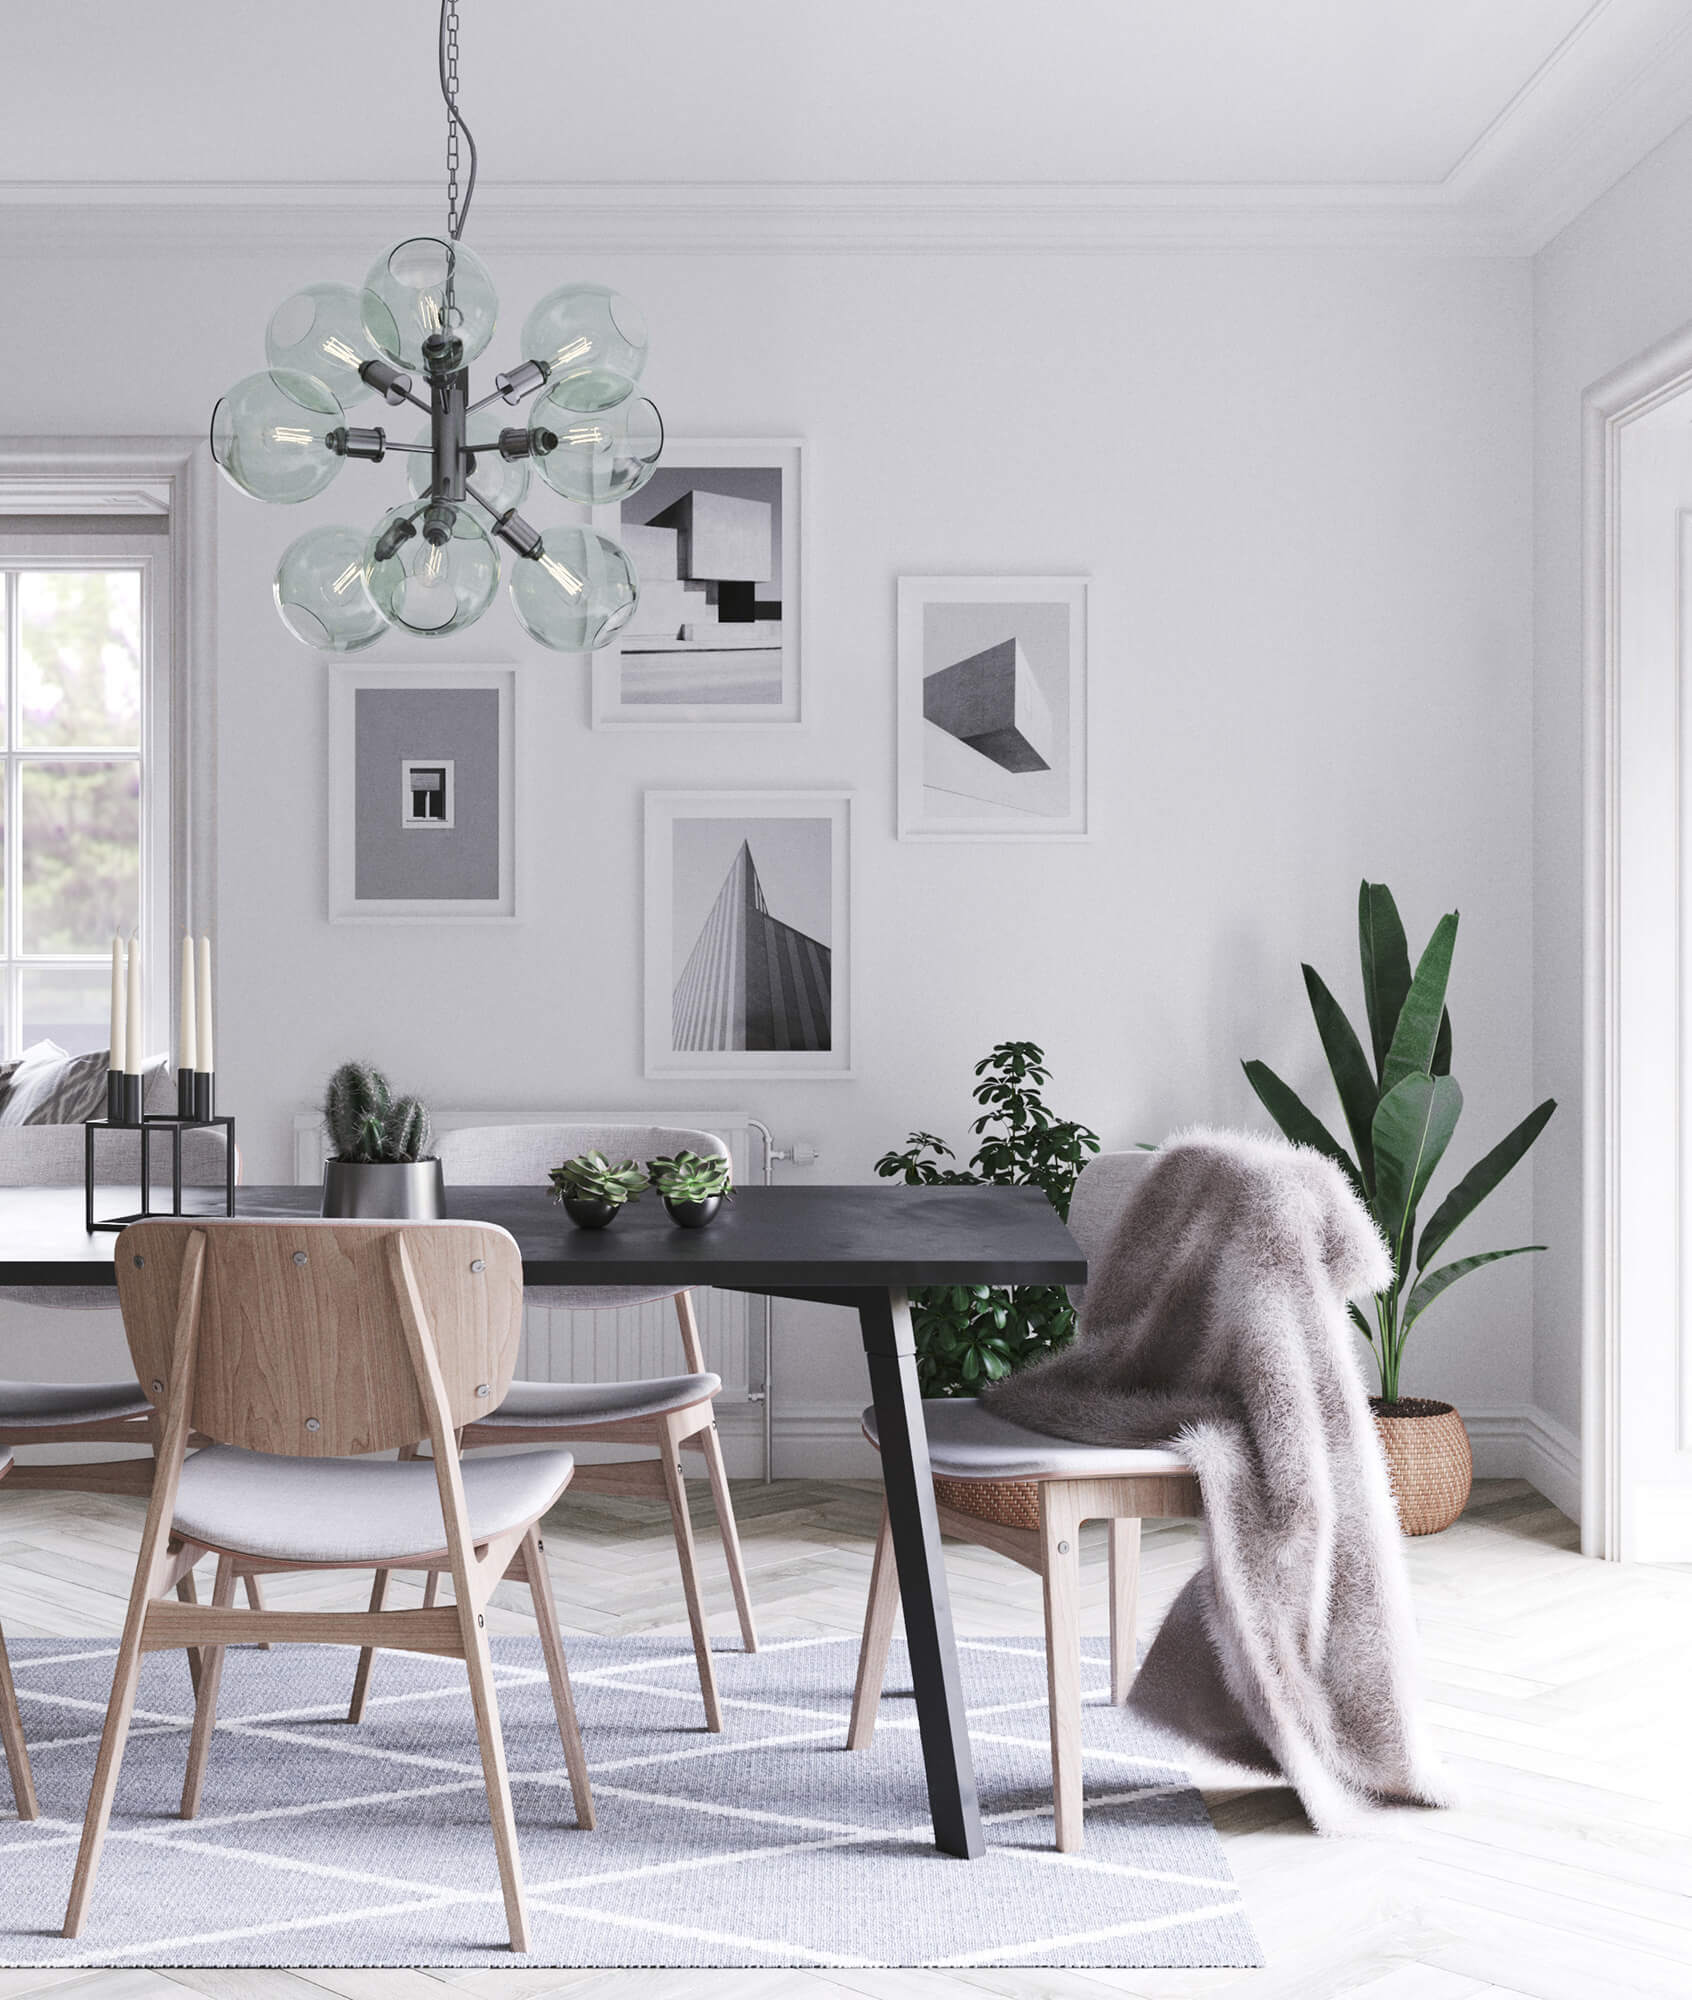 WHITE CROW STUDIOS - SCANDI LIVING CGI